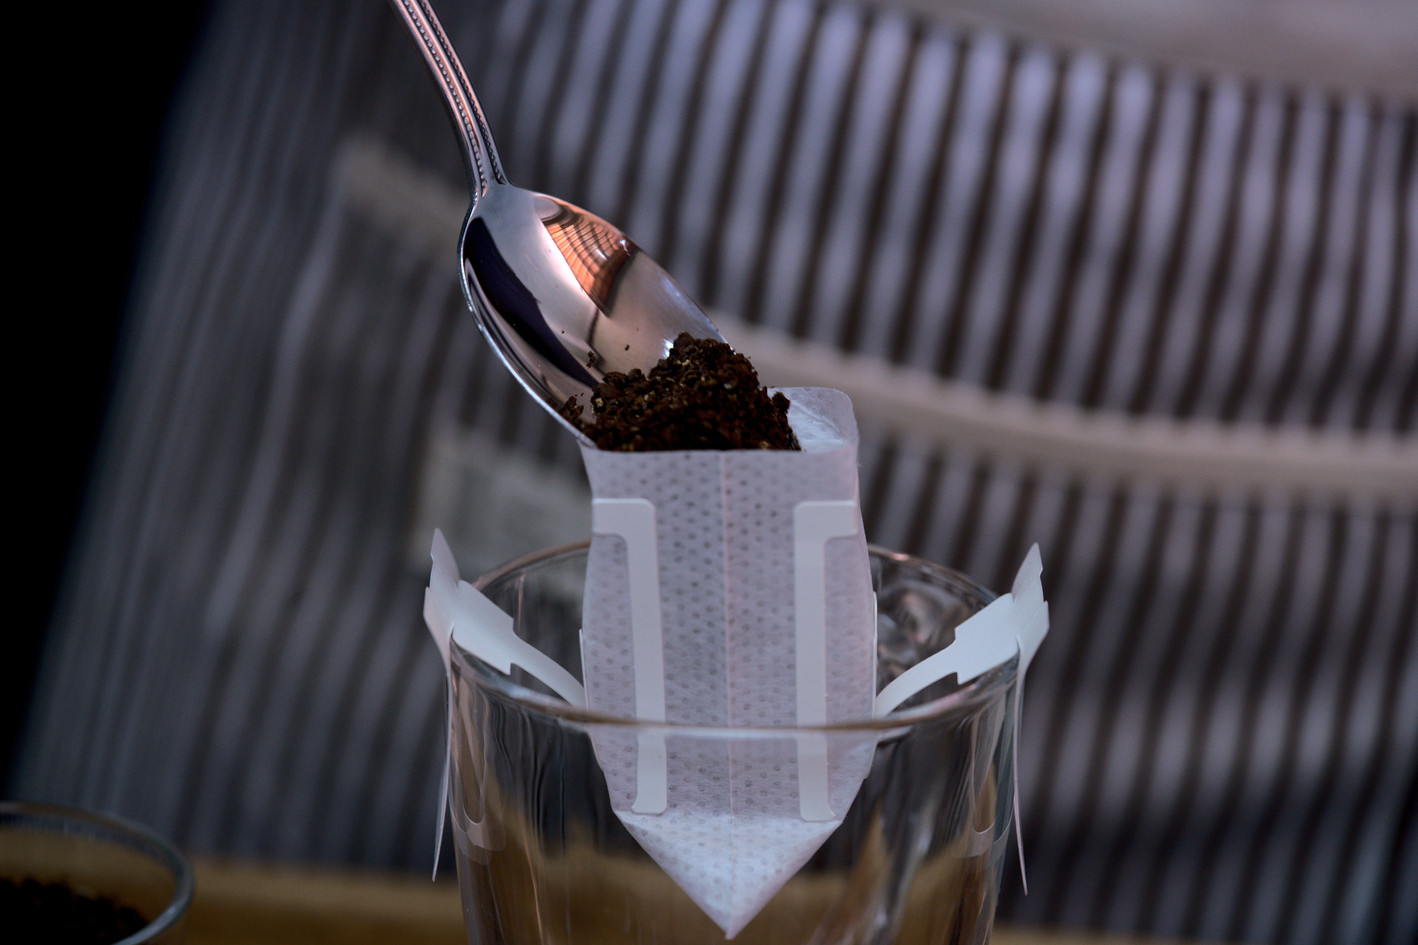 hand drip filter pouring coffee